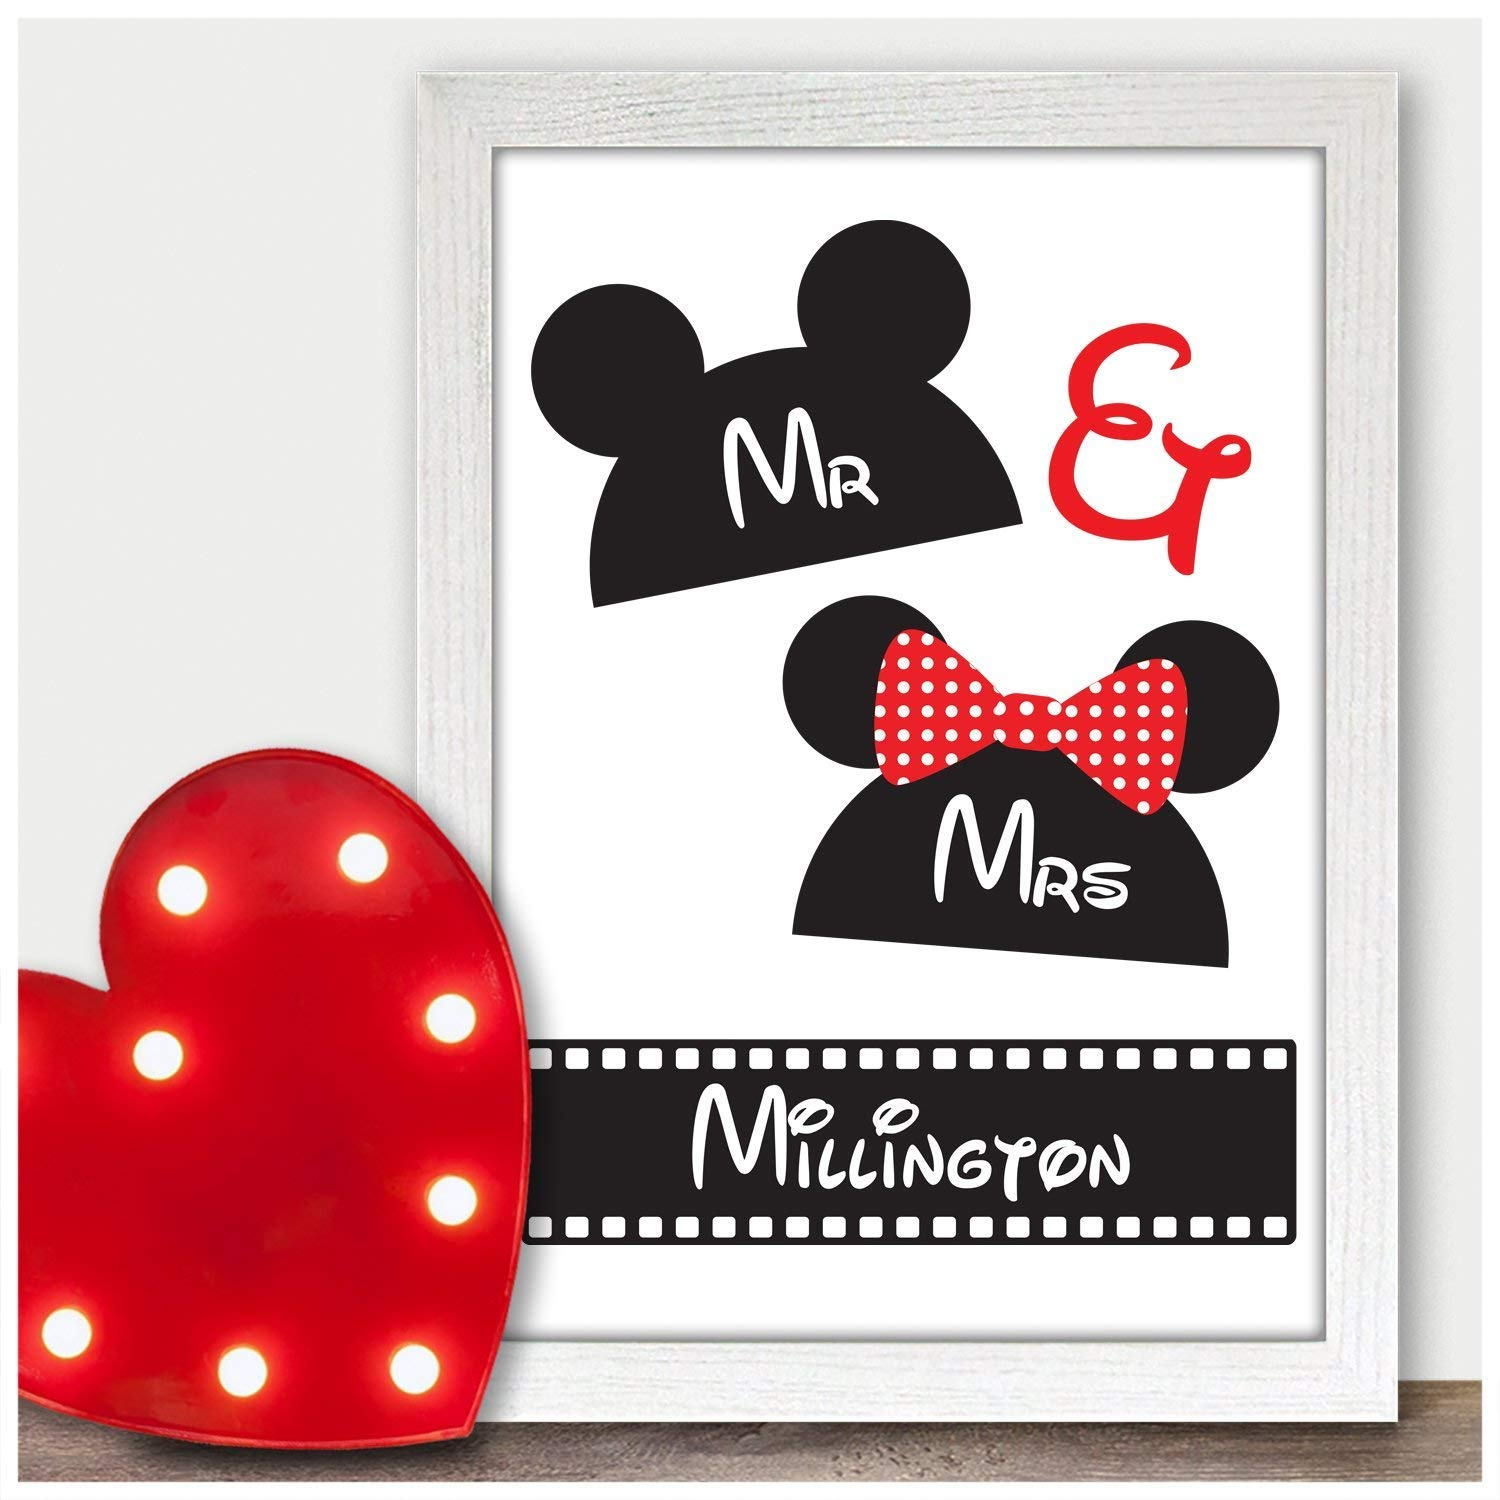 Personalized Valentines Gift For Him Gifts For Boyfriend Valentines Day Printed Valentine/'s Gift 4 or 6 Magnetic Wood Photo Block